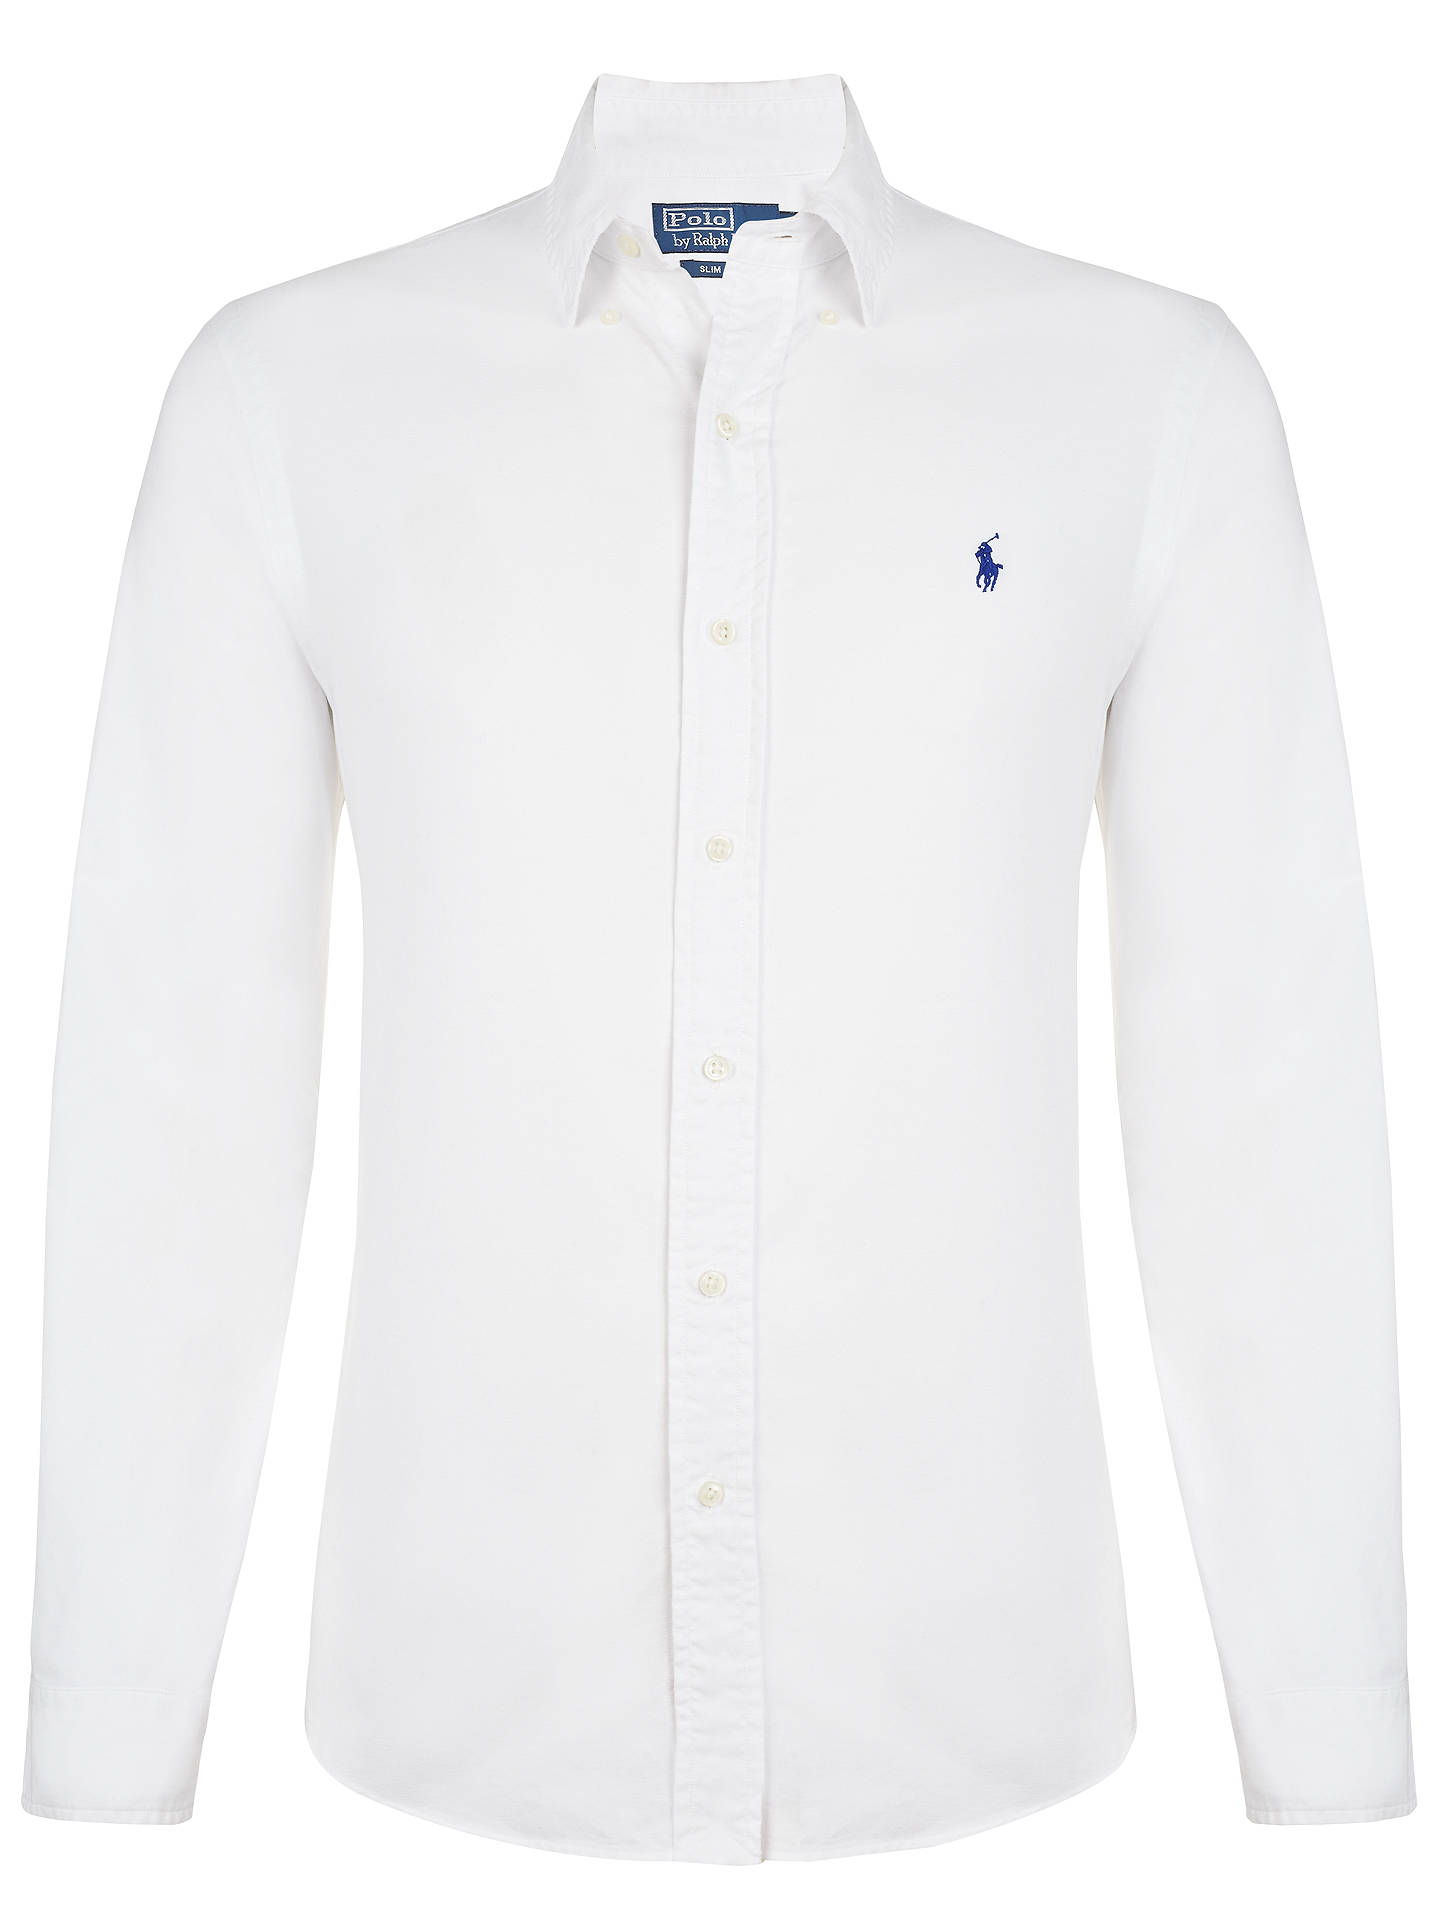 ff8dc134 Buy Polo Ralph Lauren Oxford Slim Fit Shirt, White, M Online at johnlewis.